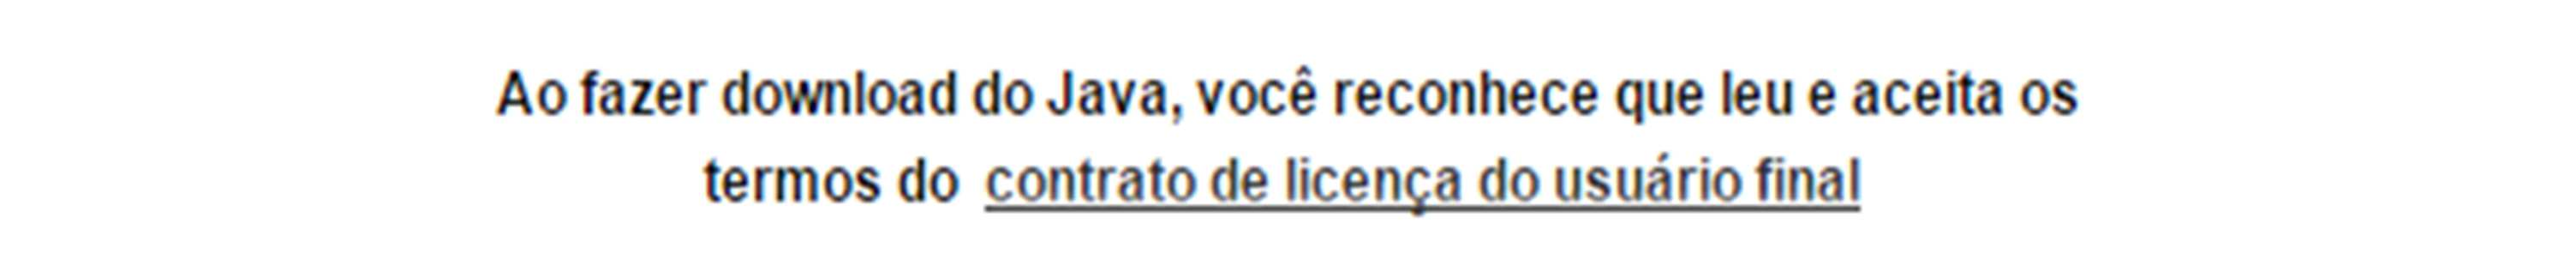 http://java.com/pt_br/download/chrome.jsp?